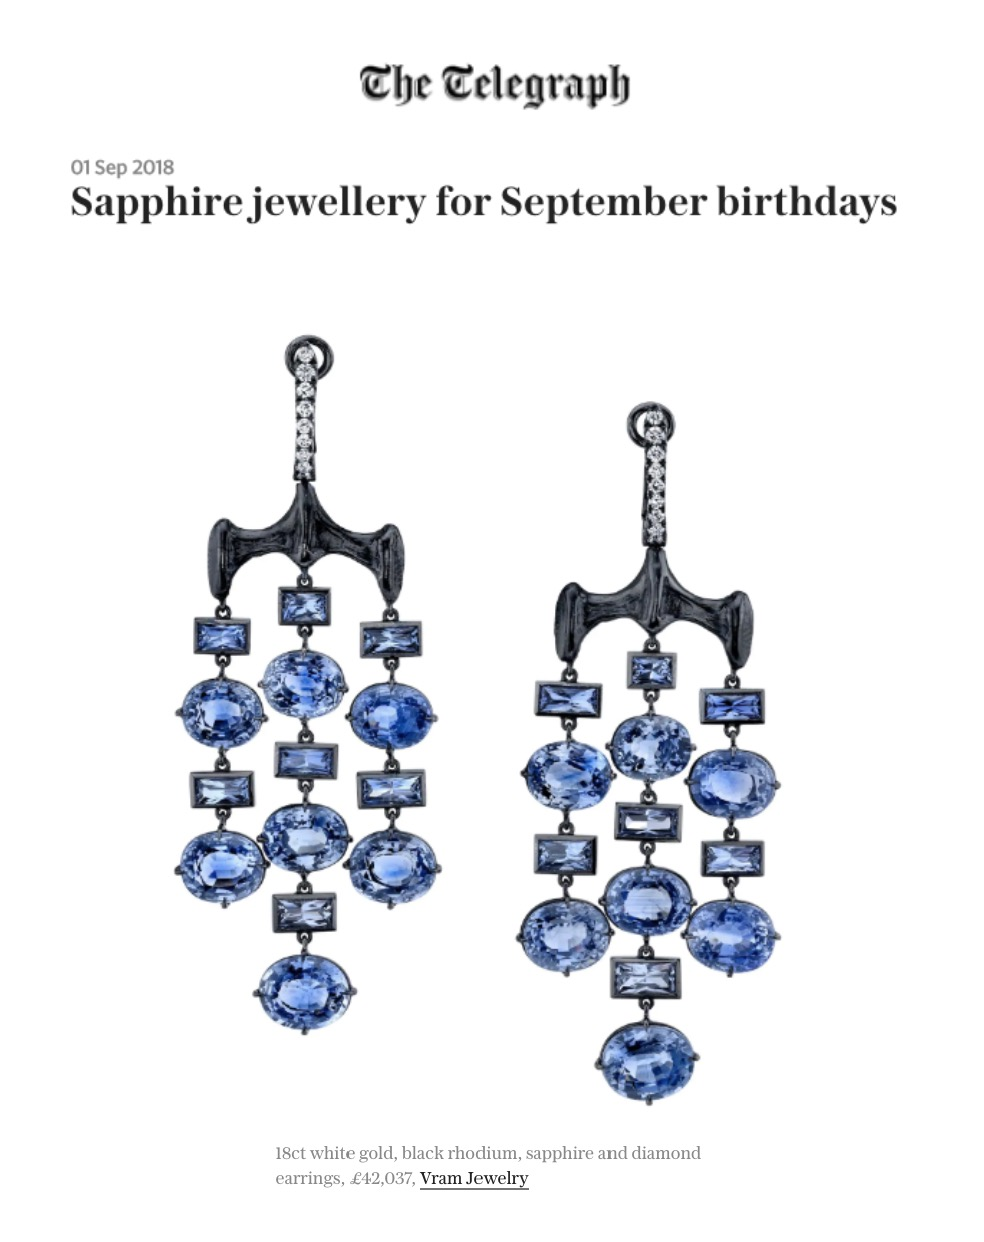 VRAM Jewelry Chrona Sapphire Earrings Telegraph UK